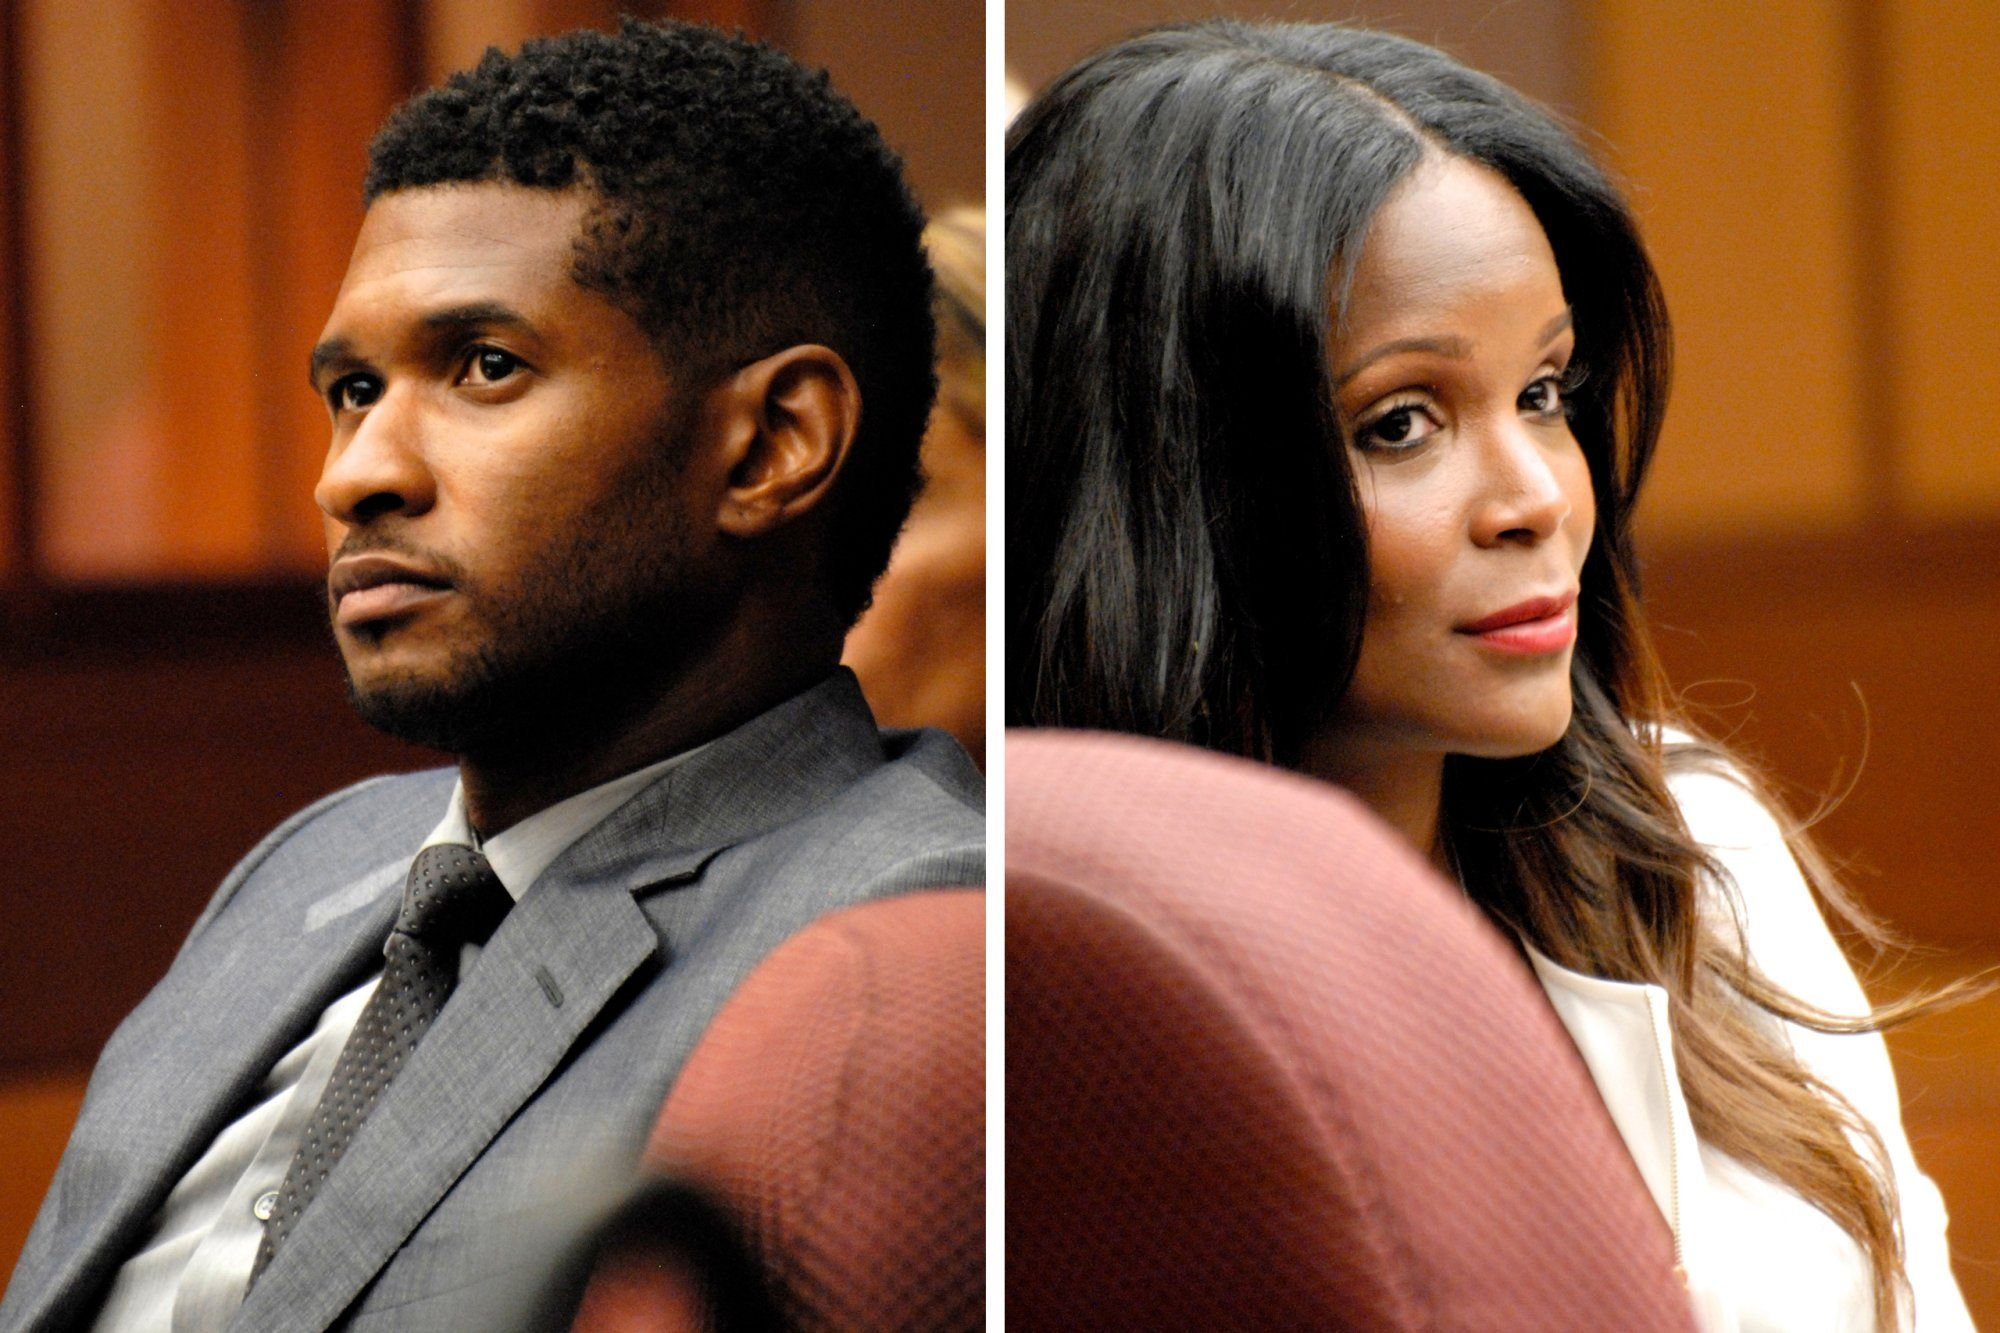 10. Usher and Tameka Foster